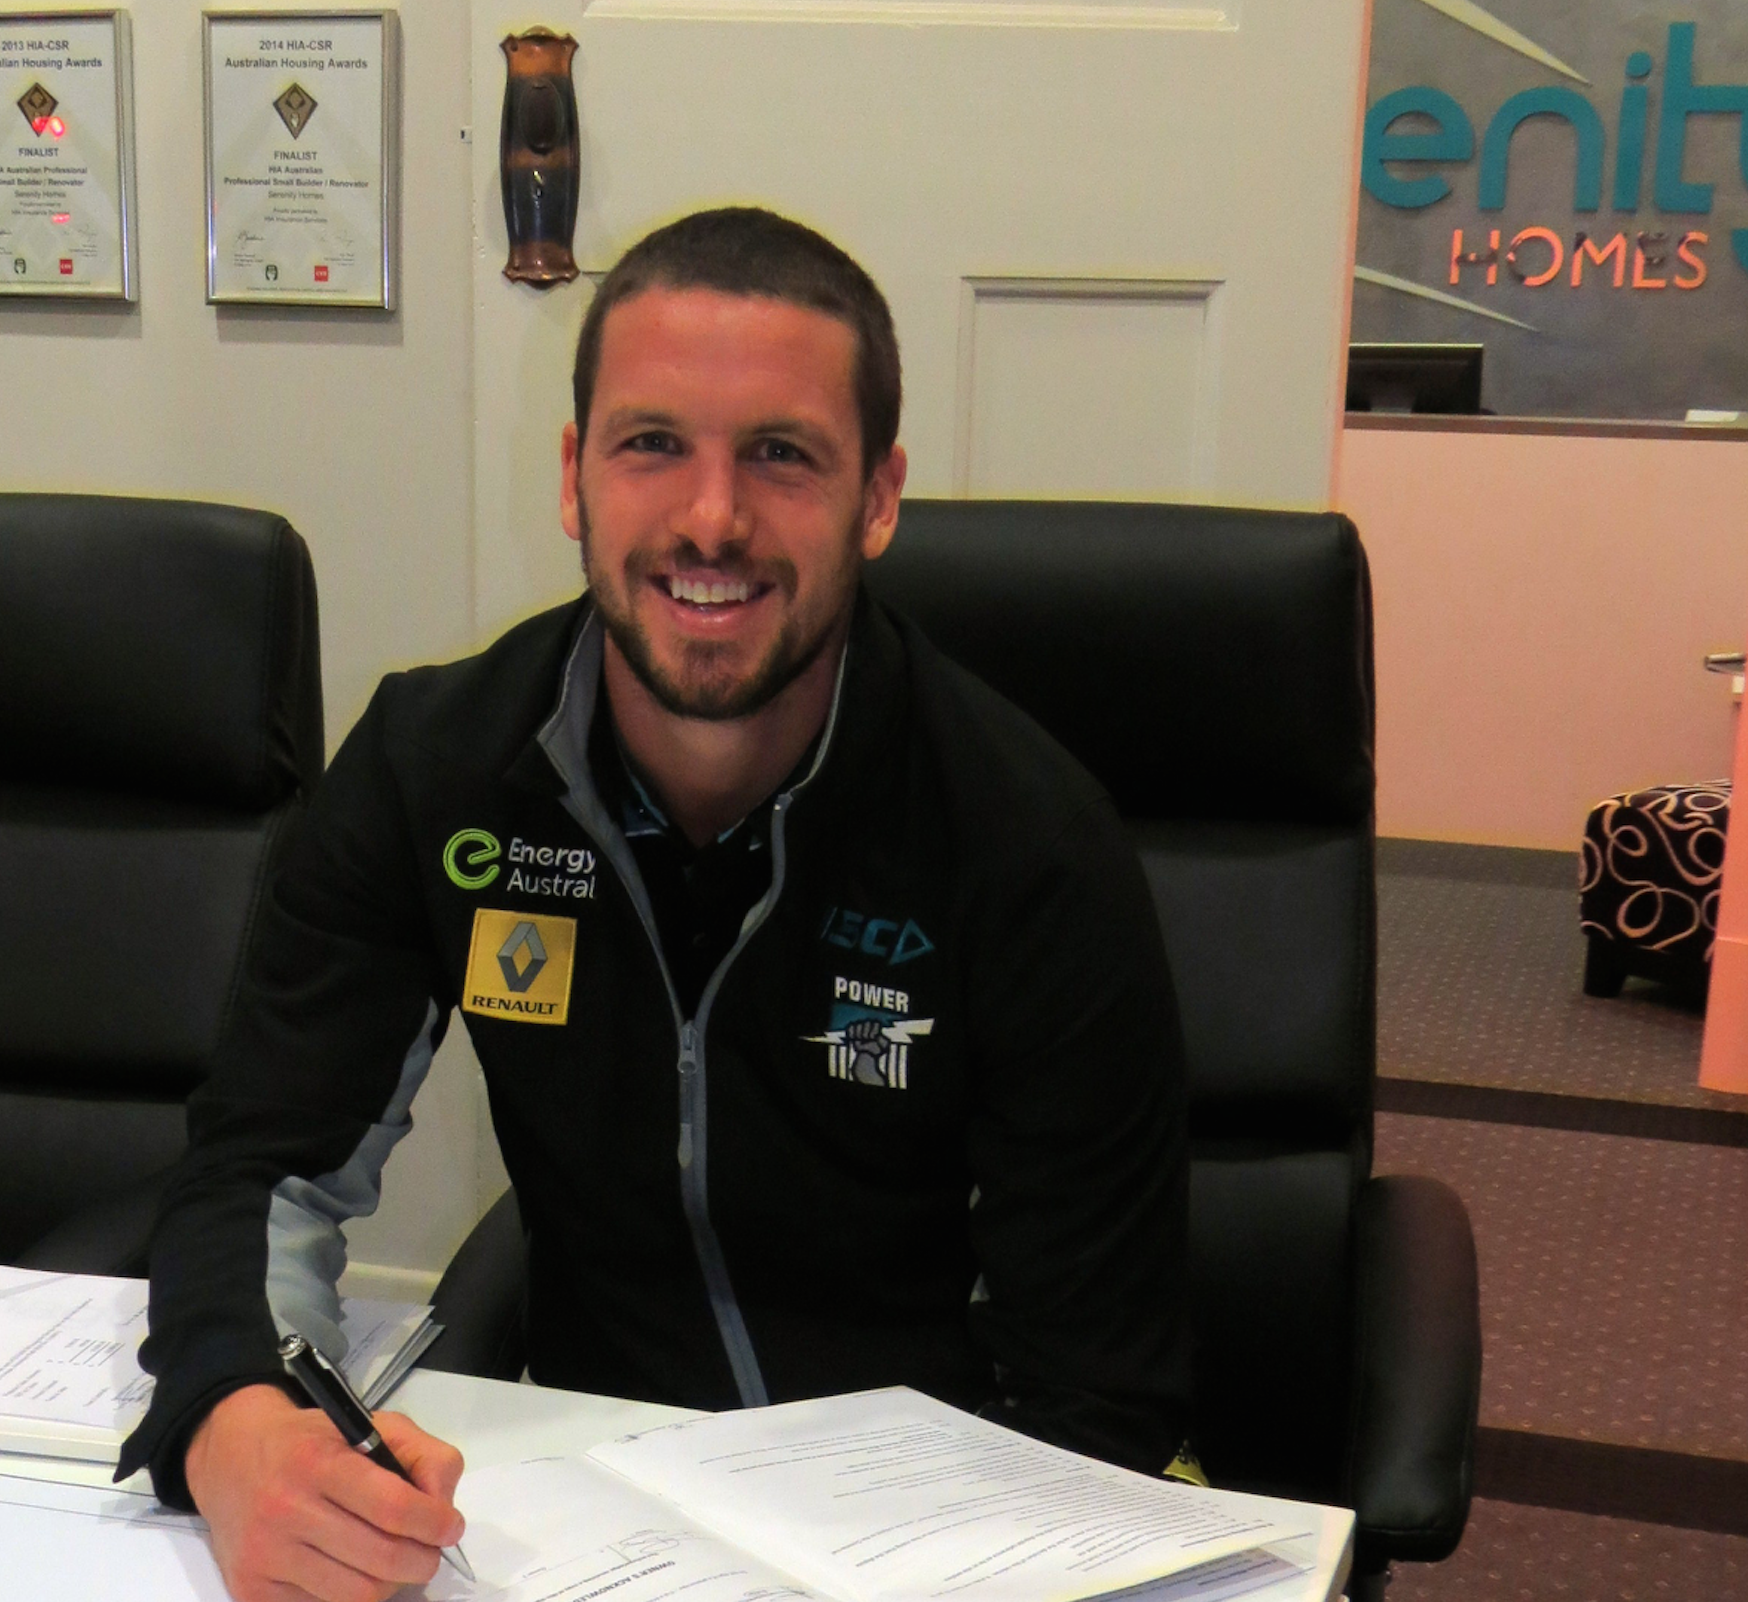 Serenity Homes Travis Boak Signs A New Contract